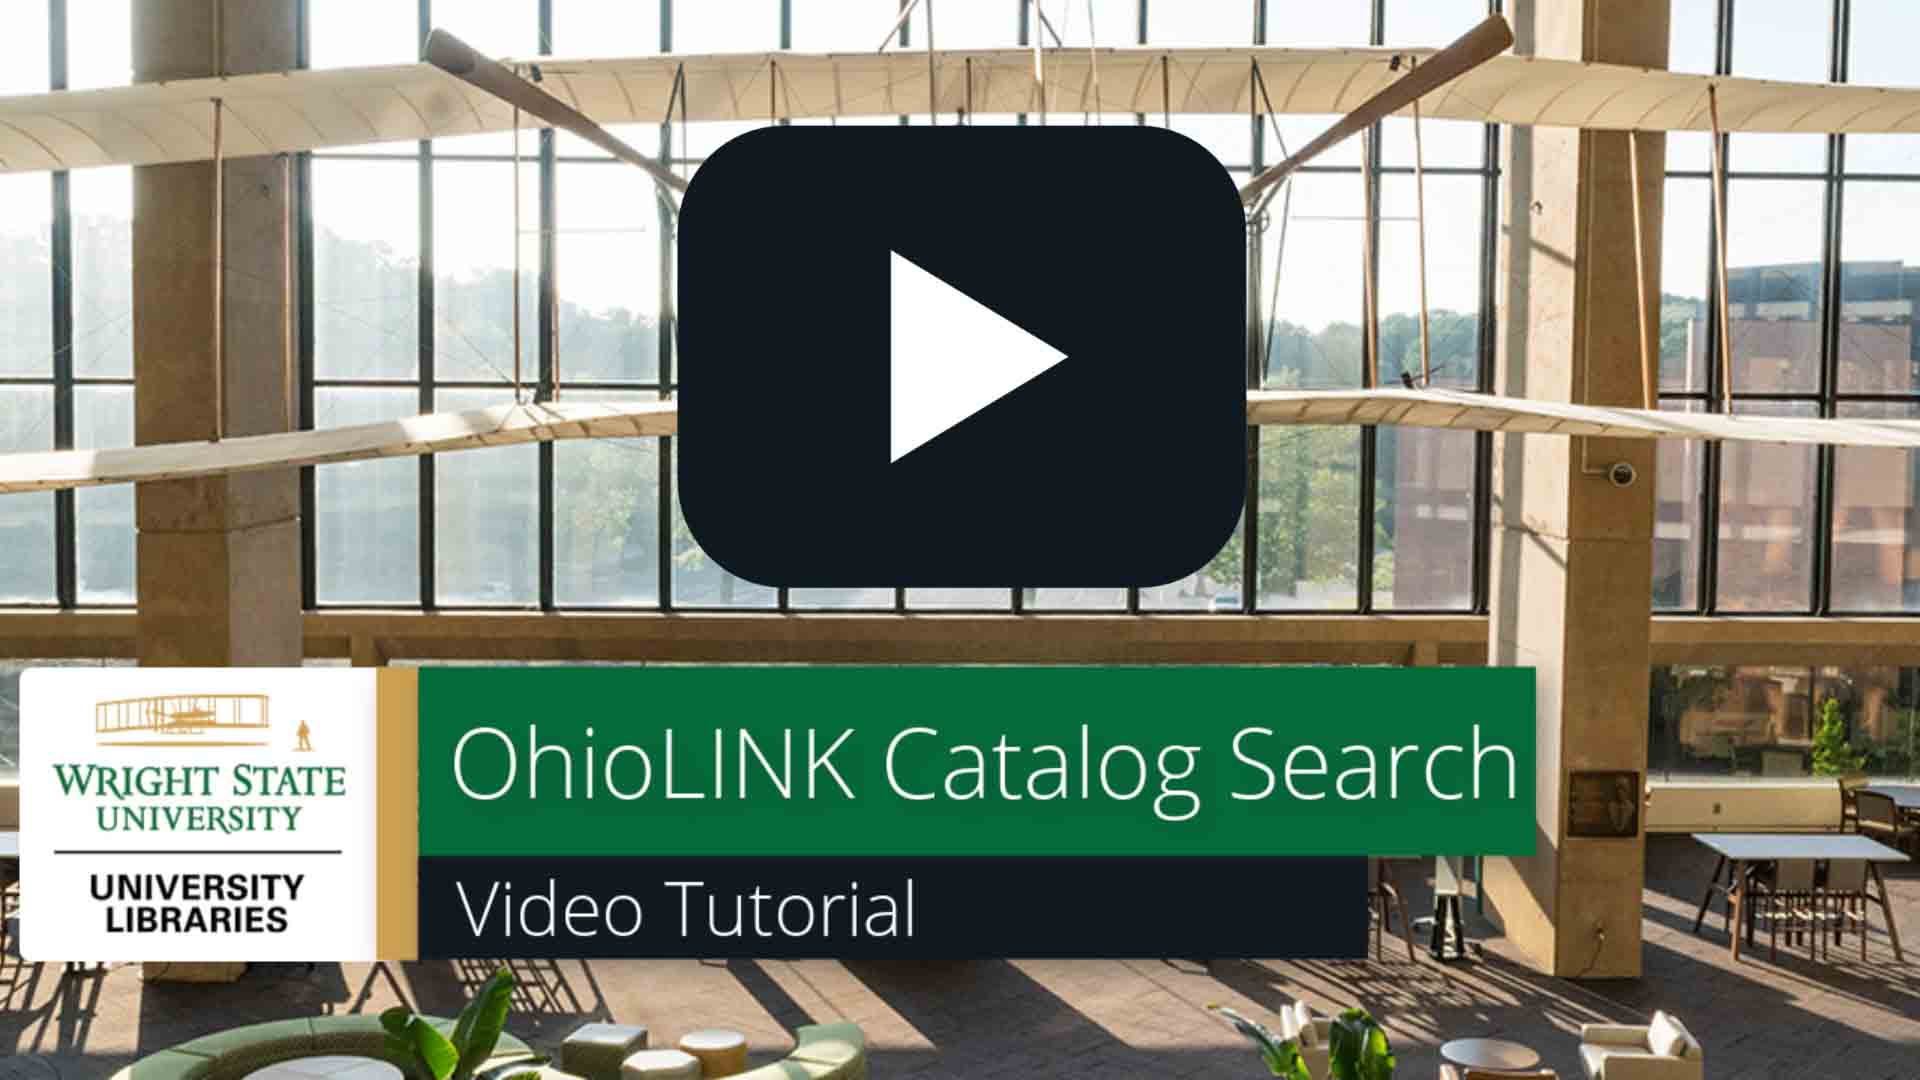 OhioLINK Catalog Search: Video Tutotorial